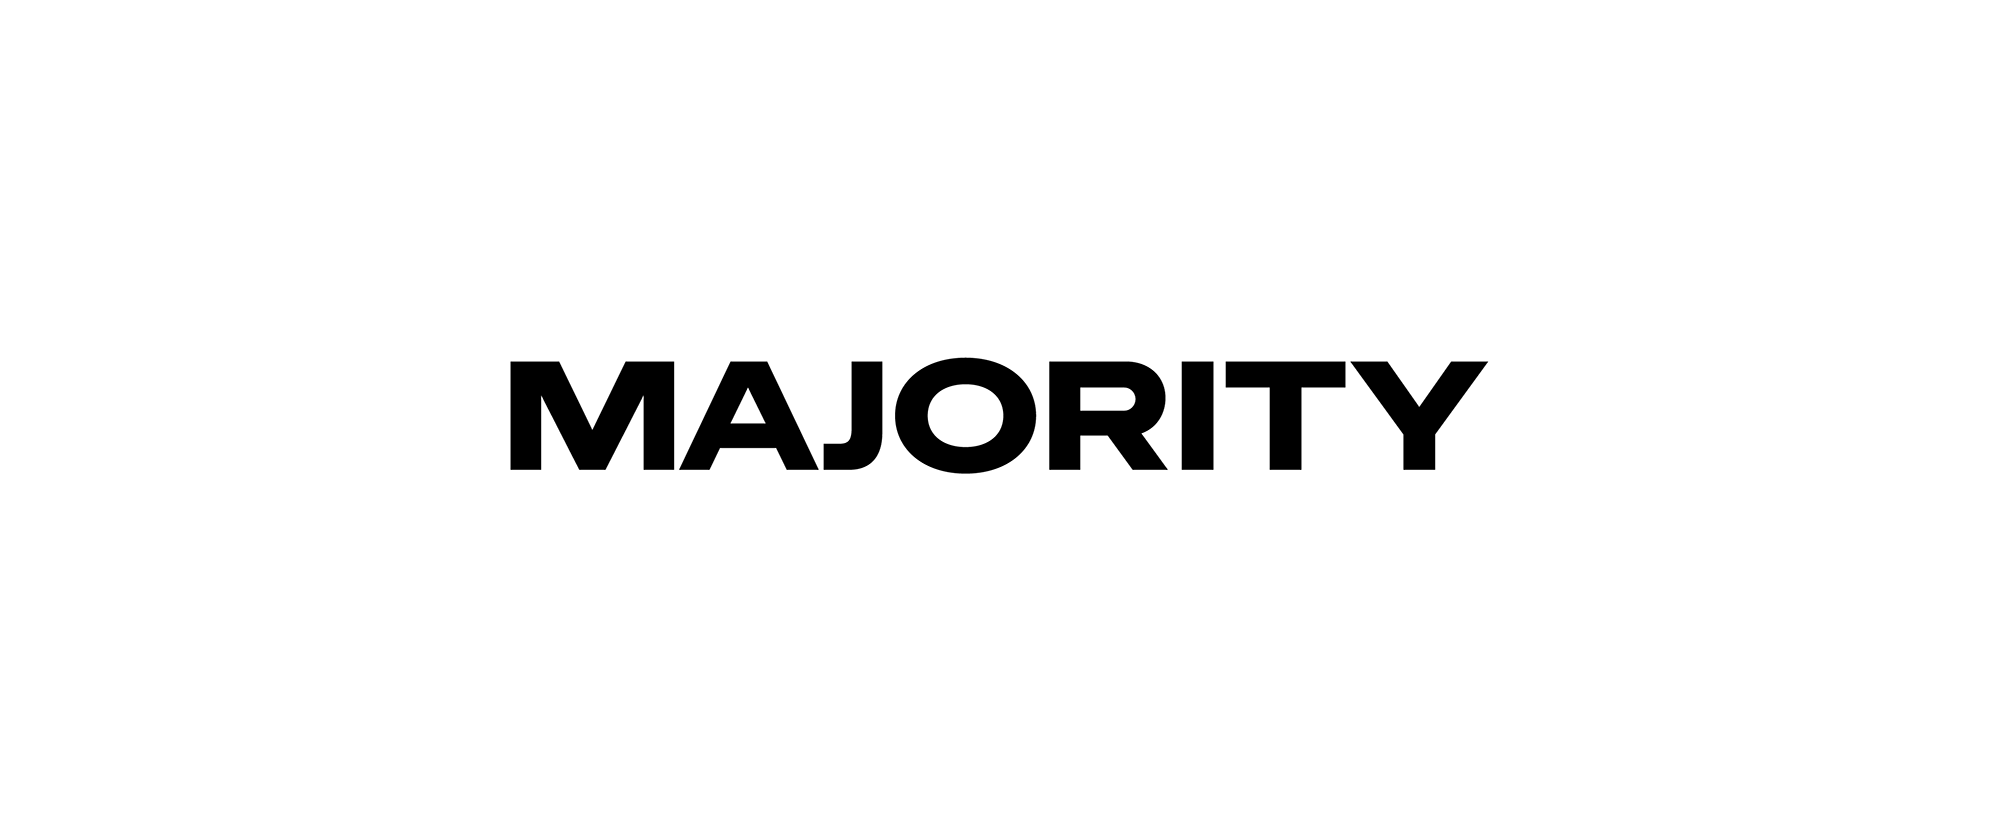 New Logo and Identity for Majority by Bold